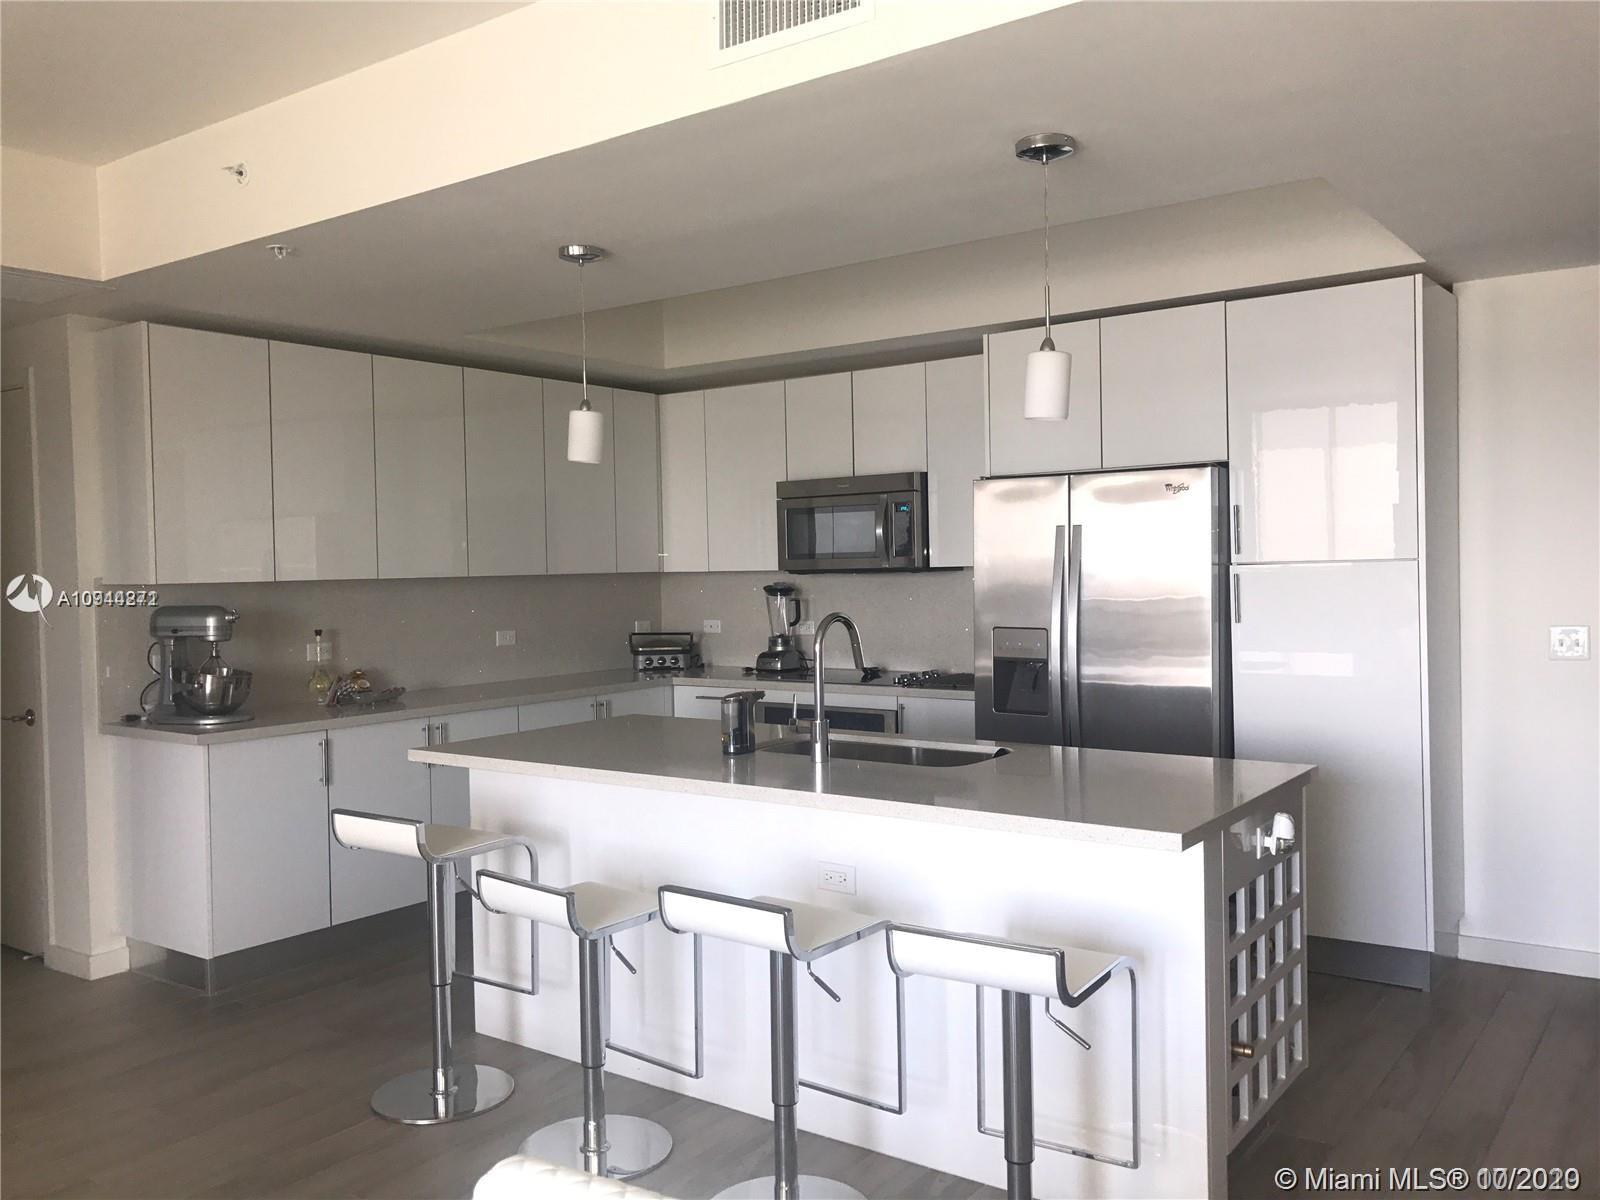 999 SW 1st Ave # 2306, Miami, Florida 33130, 2 Bedrooms Bedrooms, ,2 BathroomsBathrooms,Residential Lease,For Rent,999 SW 1st Ave # 2306,A10944271